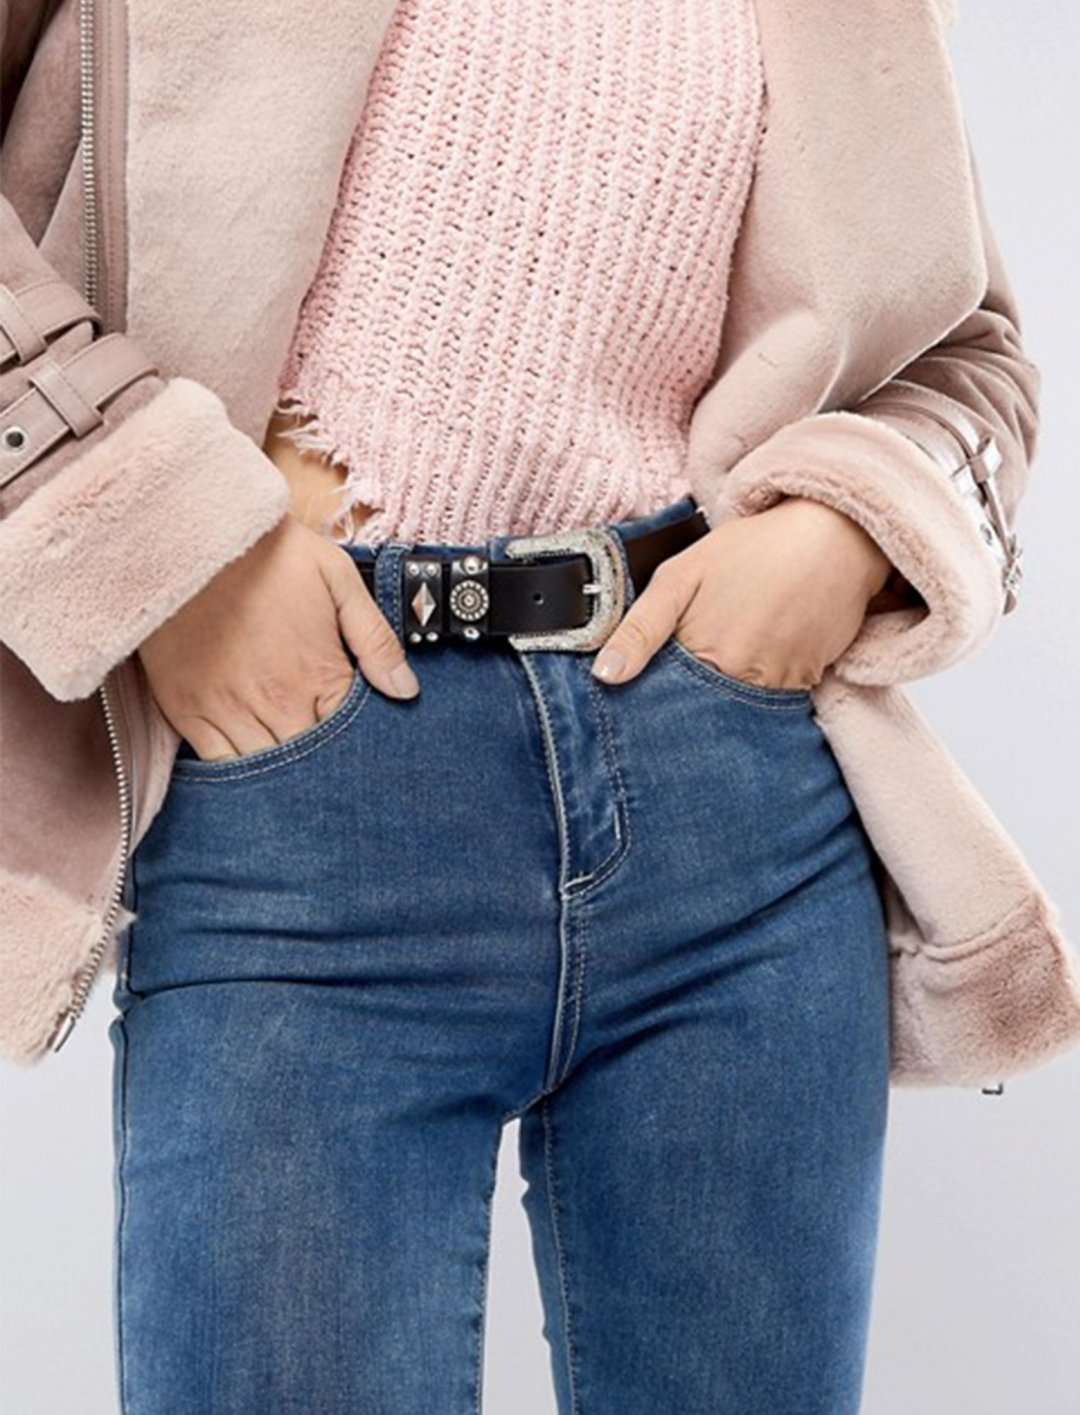 Stud Detail Jeans Belt Accessories Glamorous